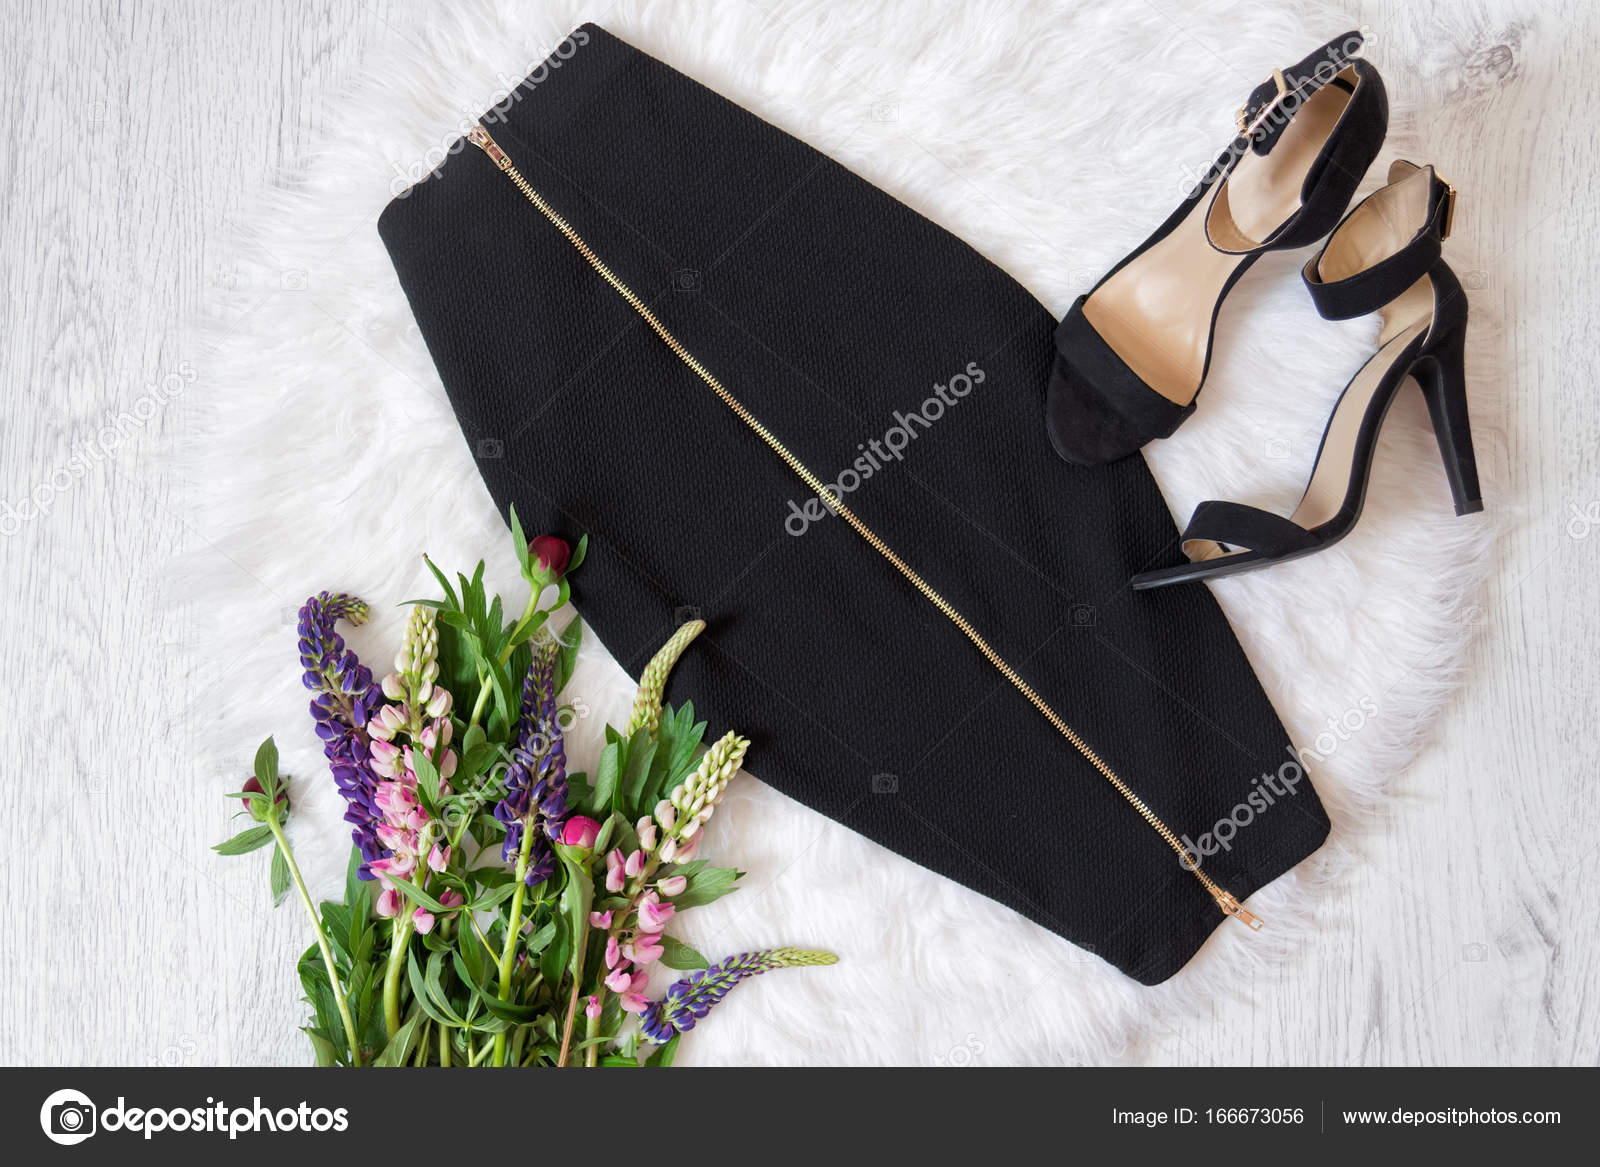 Midi Black Skirt With A Zipper And Shoes With White Fur A Bouquet